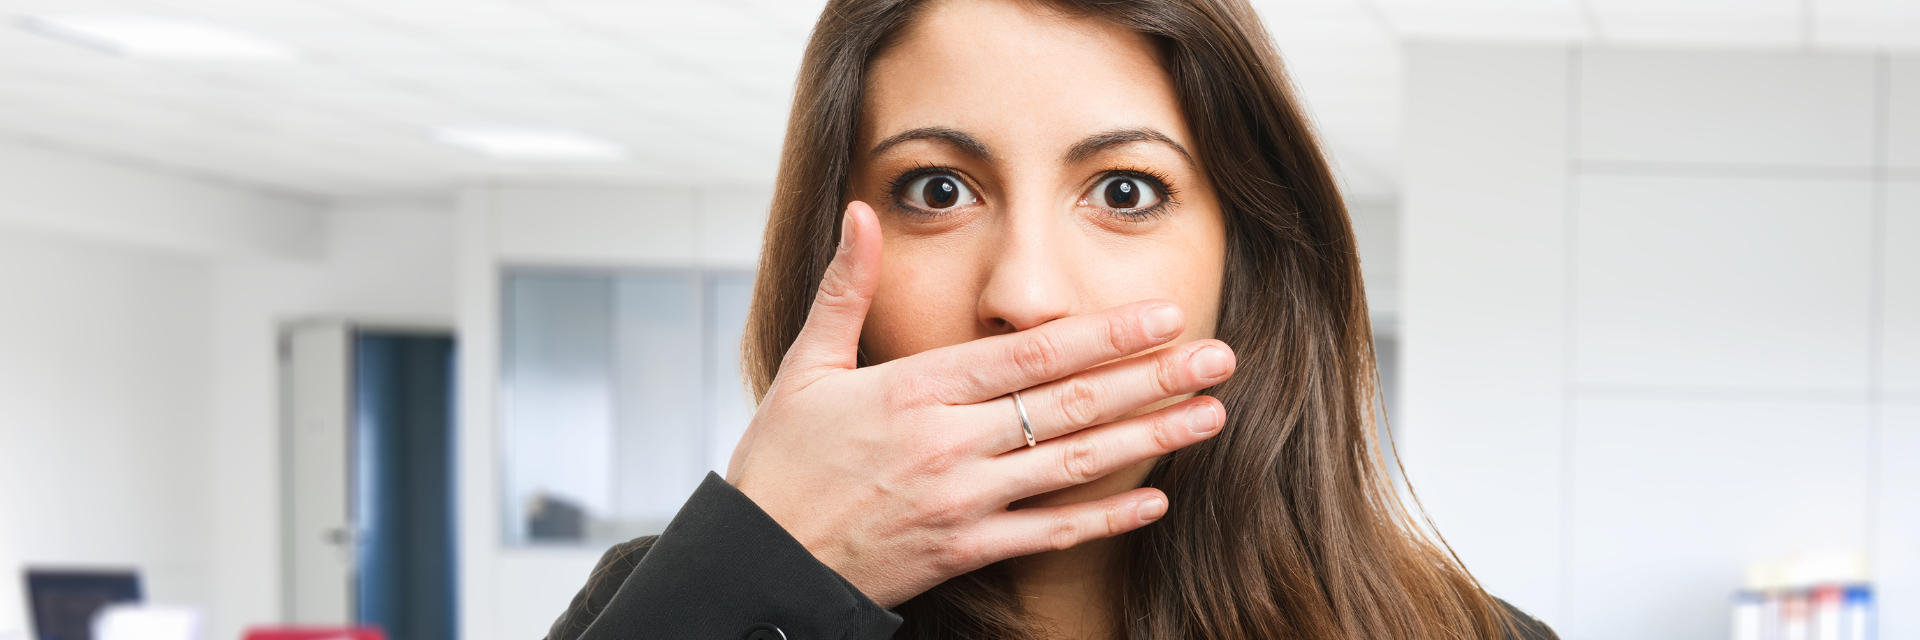 Concerned young woman covering her mouth due to bad breath.